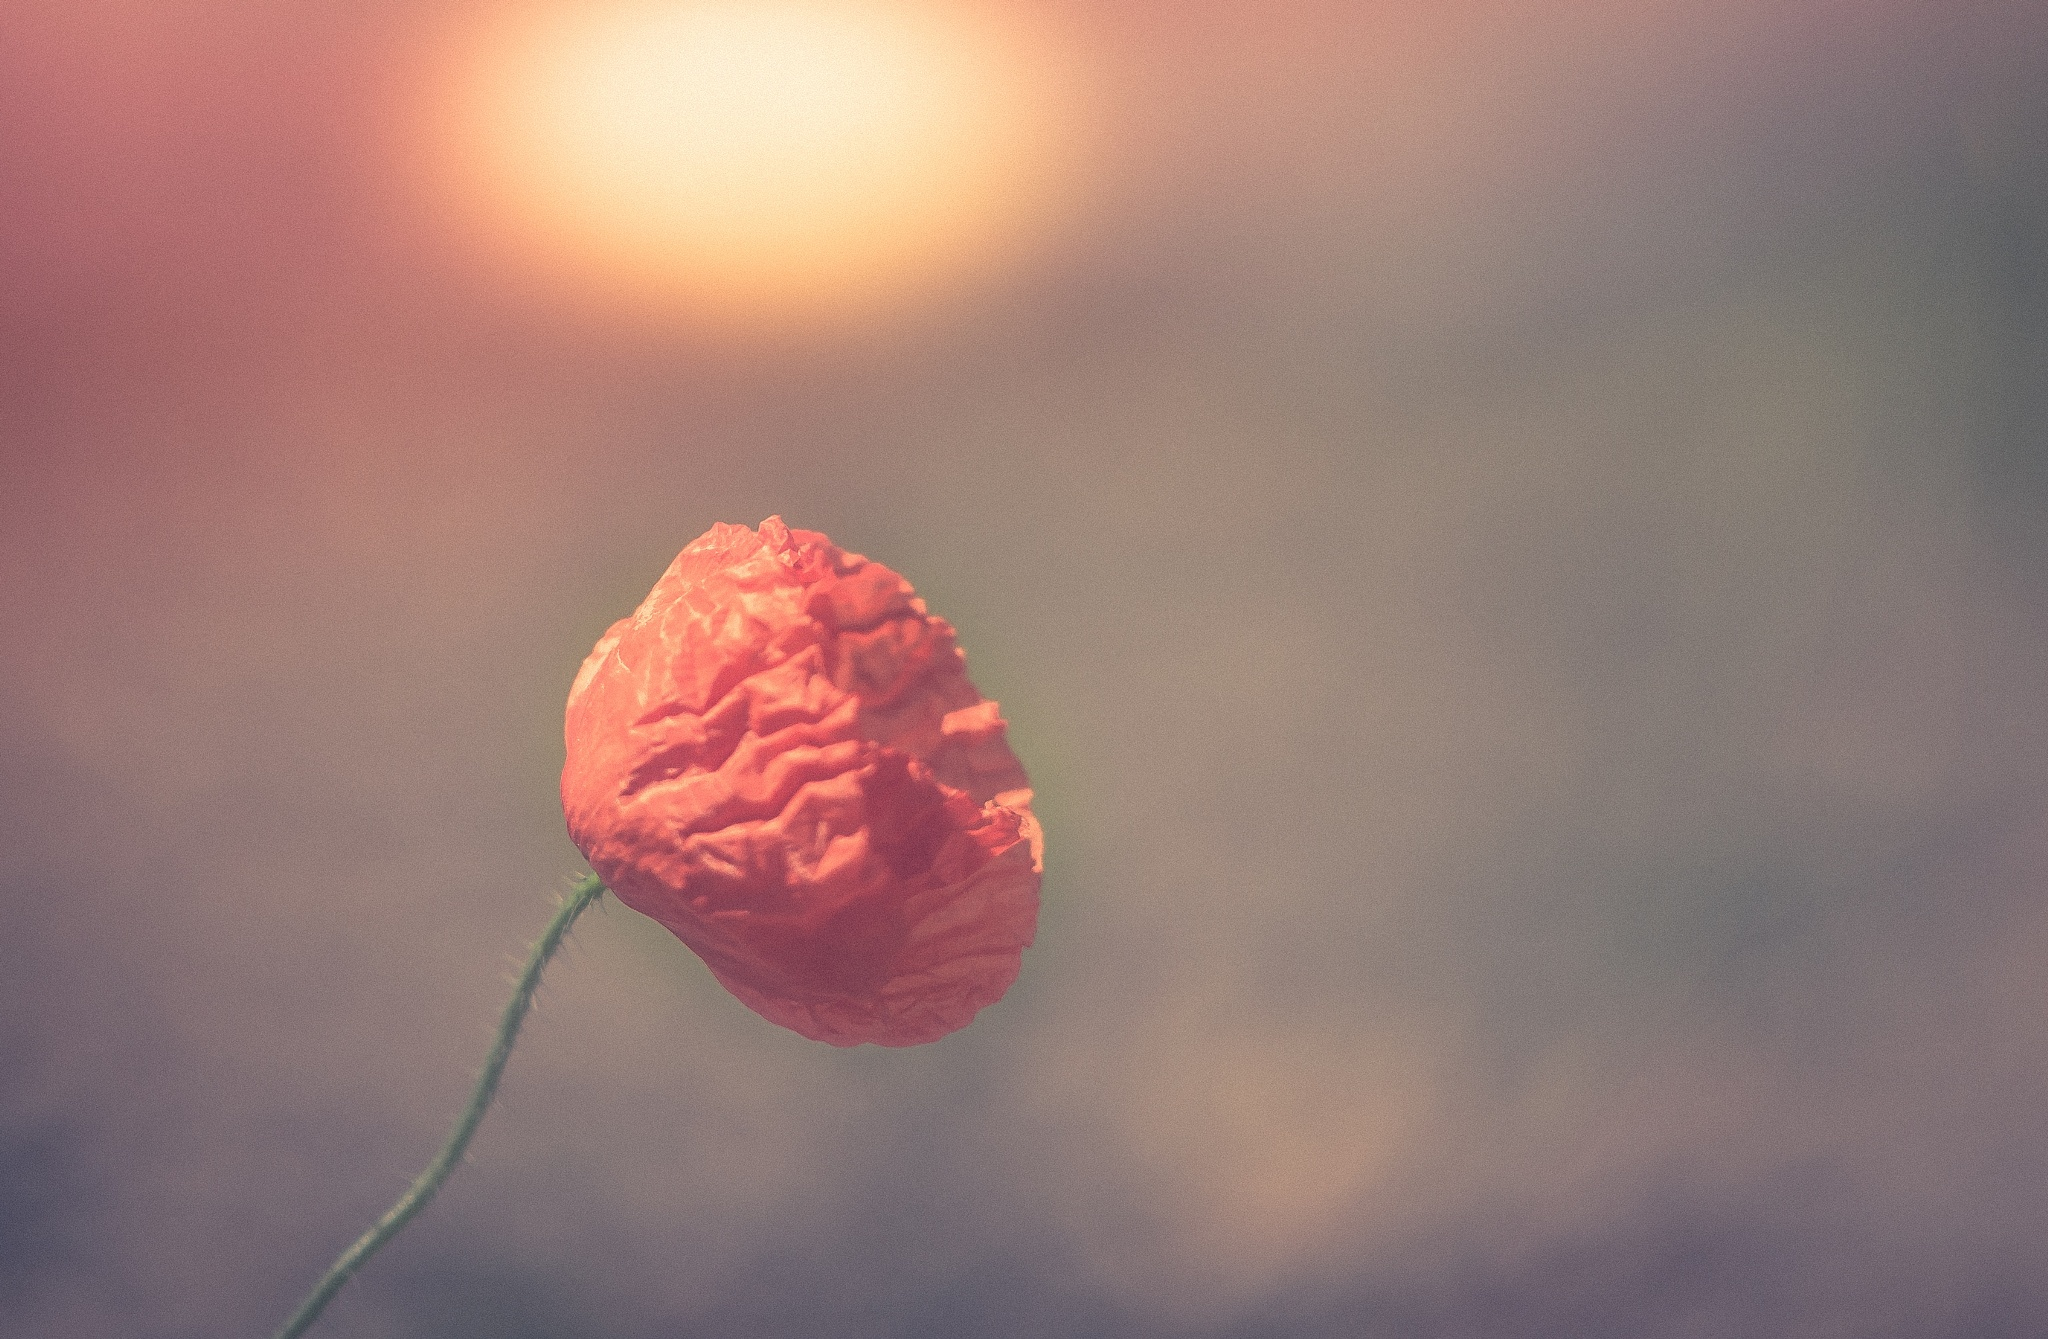 flower 3 by khattou Mourad